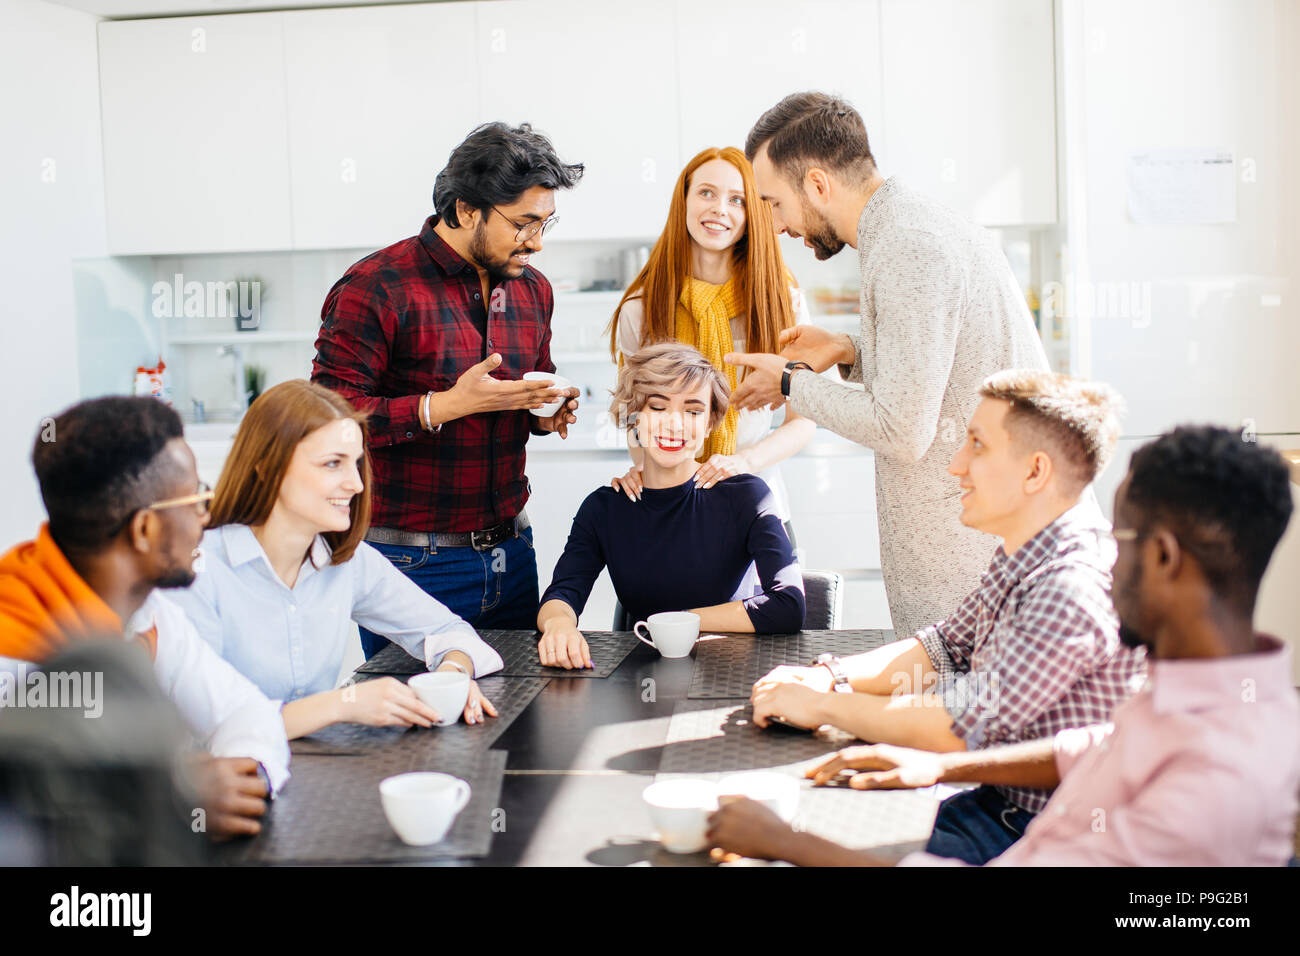 tide smiling female cheif with closed eyes is listening her workers complains. employees are persuading their leader in break time - Stock Image